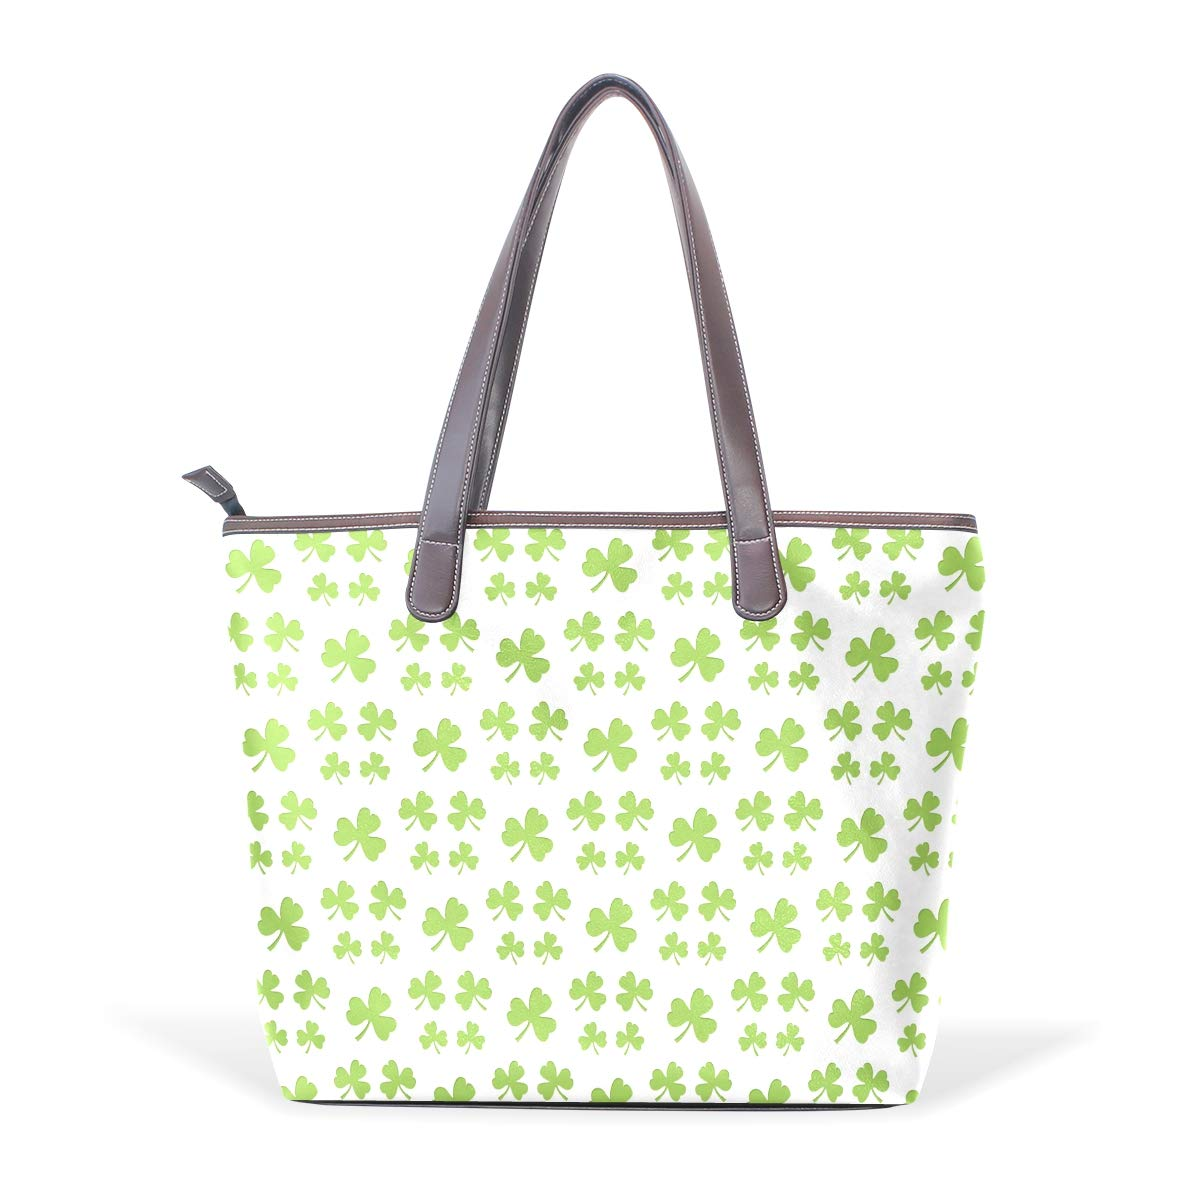 Womens Leather First Patricks Day Clover Gifts Handbag Satchel Tote Bag Tote Purse